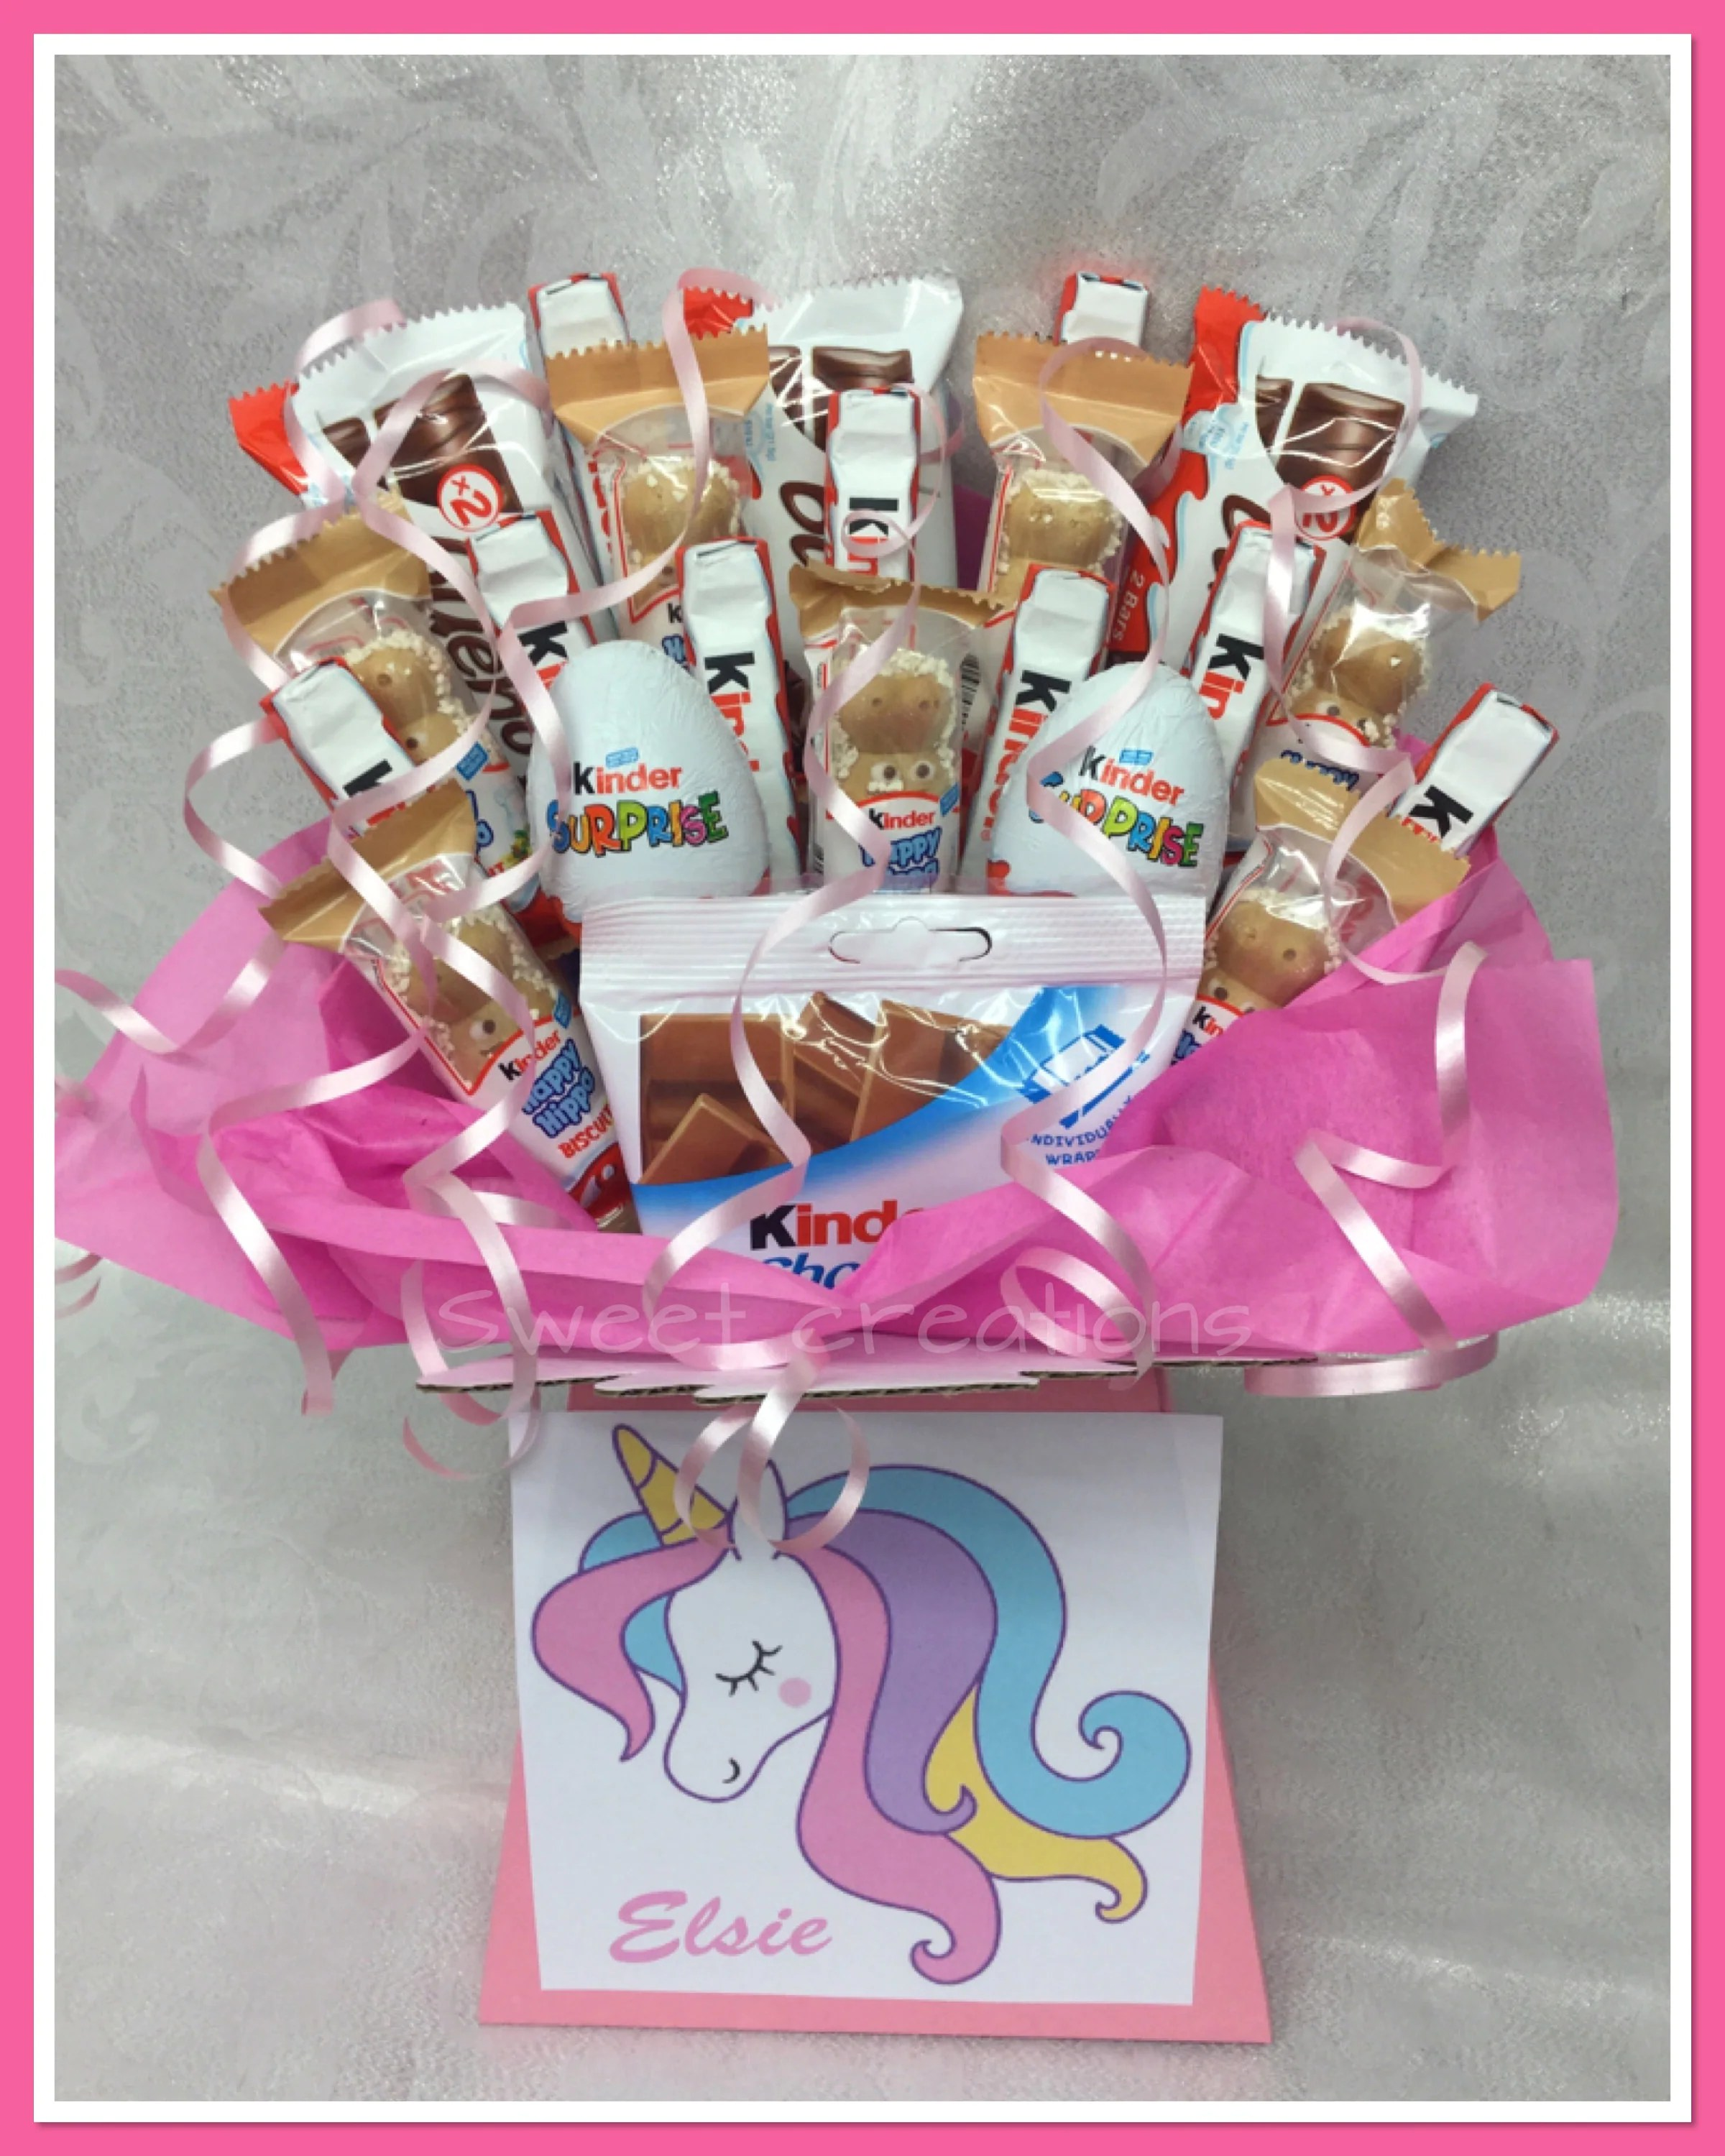 Kinderessen Party Unicorn Kinder Bouquet Large Sweet Creations Sweet Hamper Gift Party Tablecentre